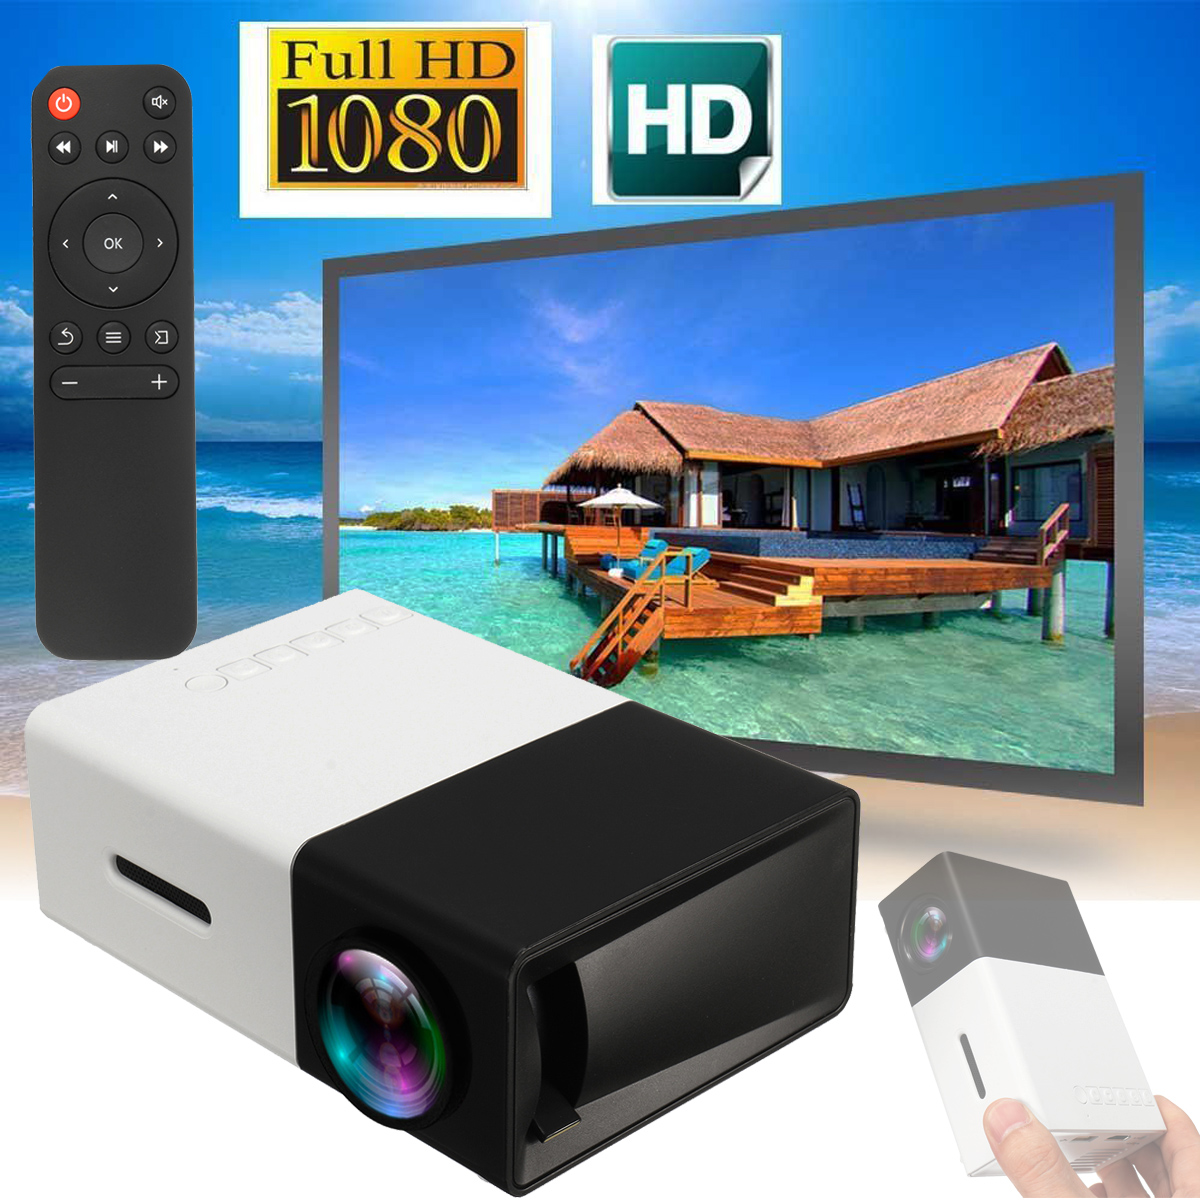 Mini Portable HD 1080P LED AV SD USB Projector Home Theater for Cell Phone uc40 55whd 1080p mini home 1080p led projector 50lm w hdmi av sd usb